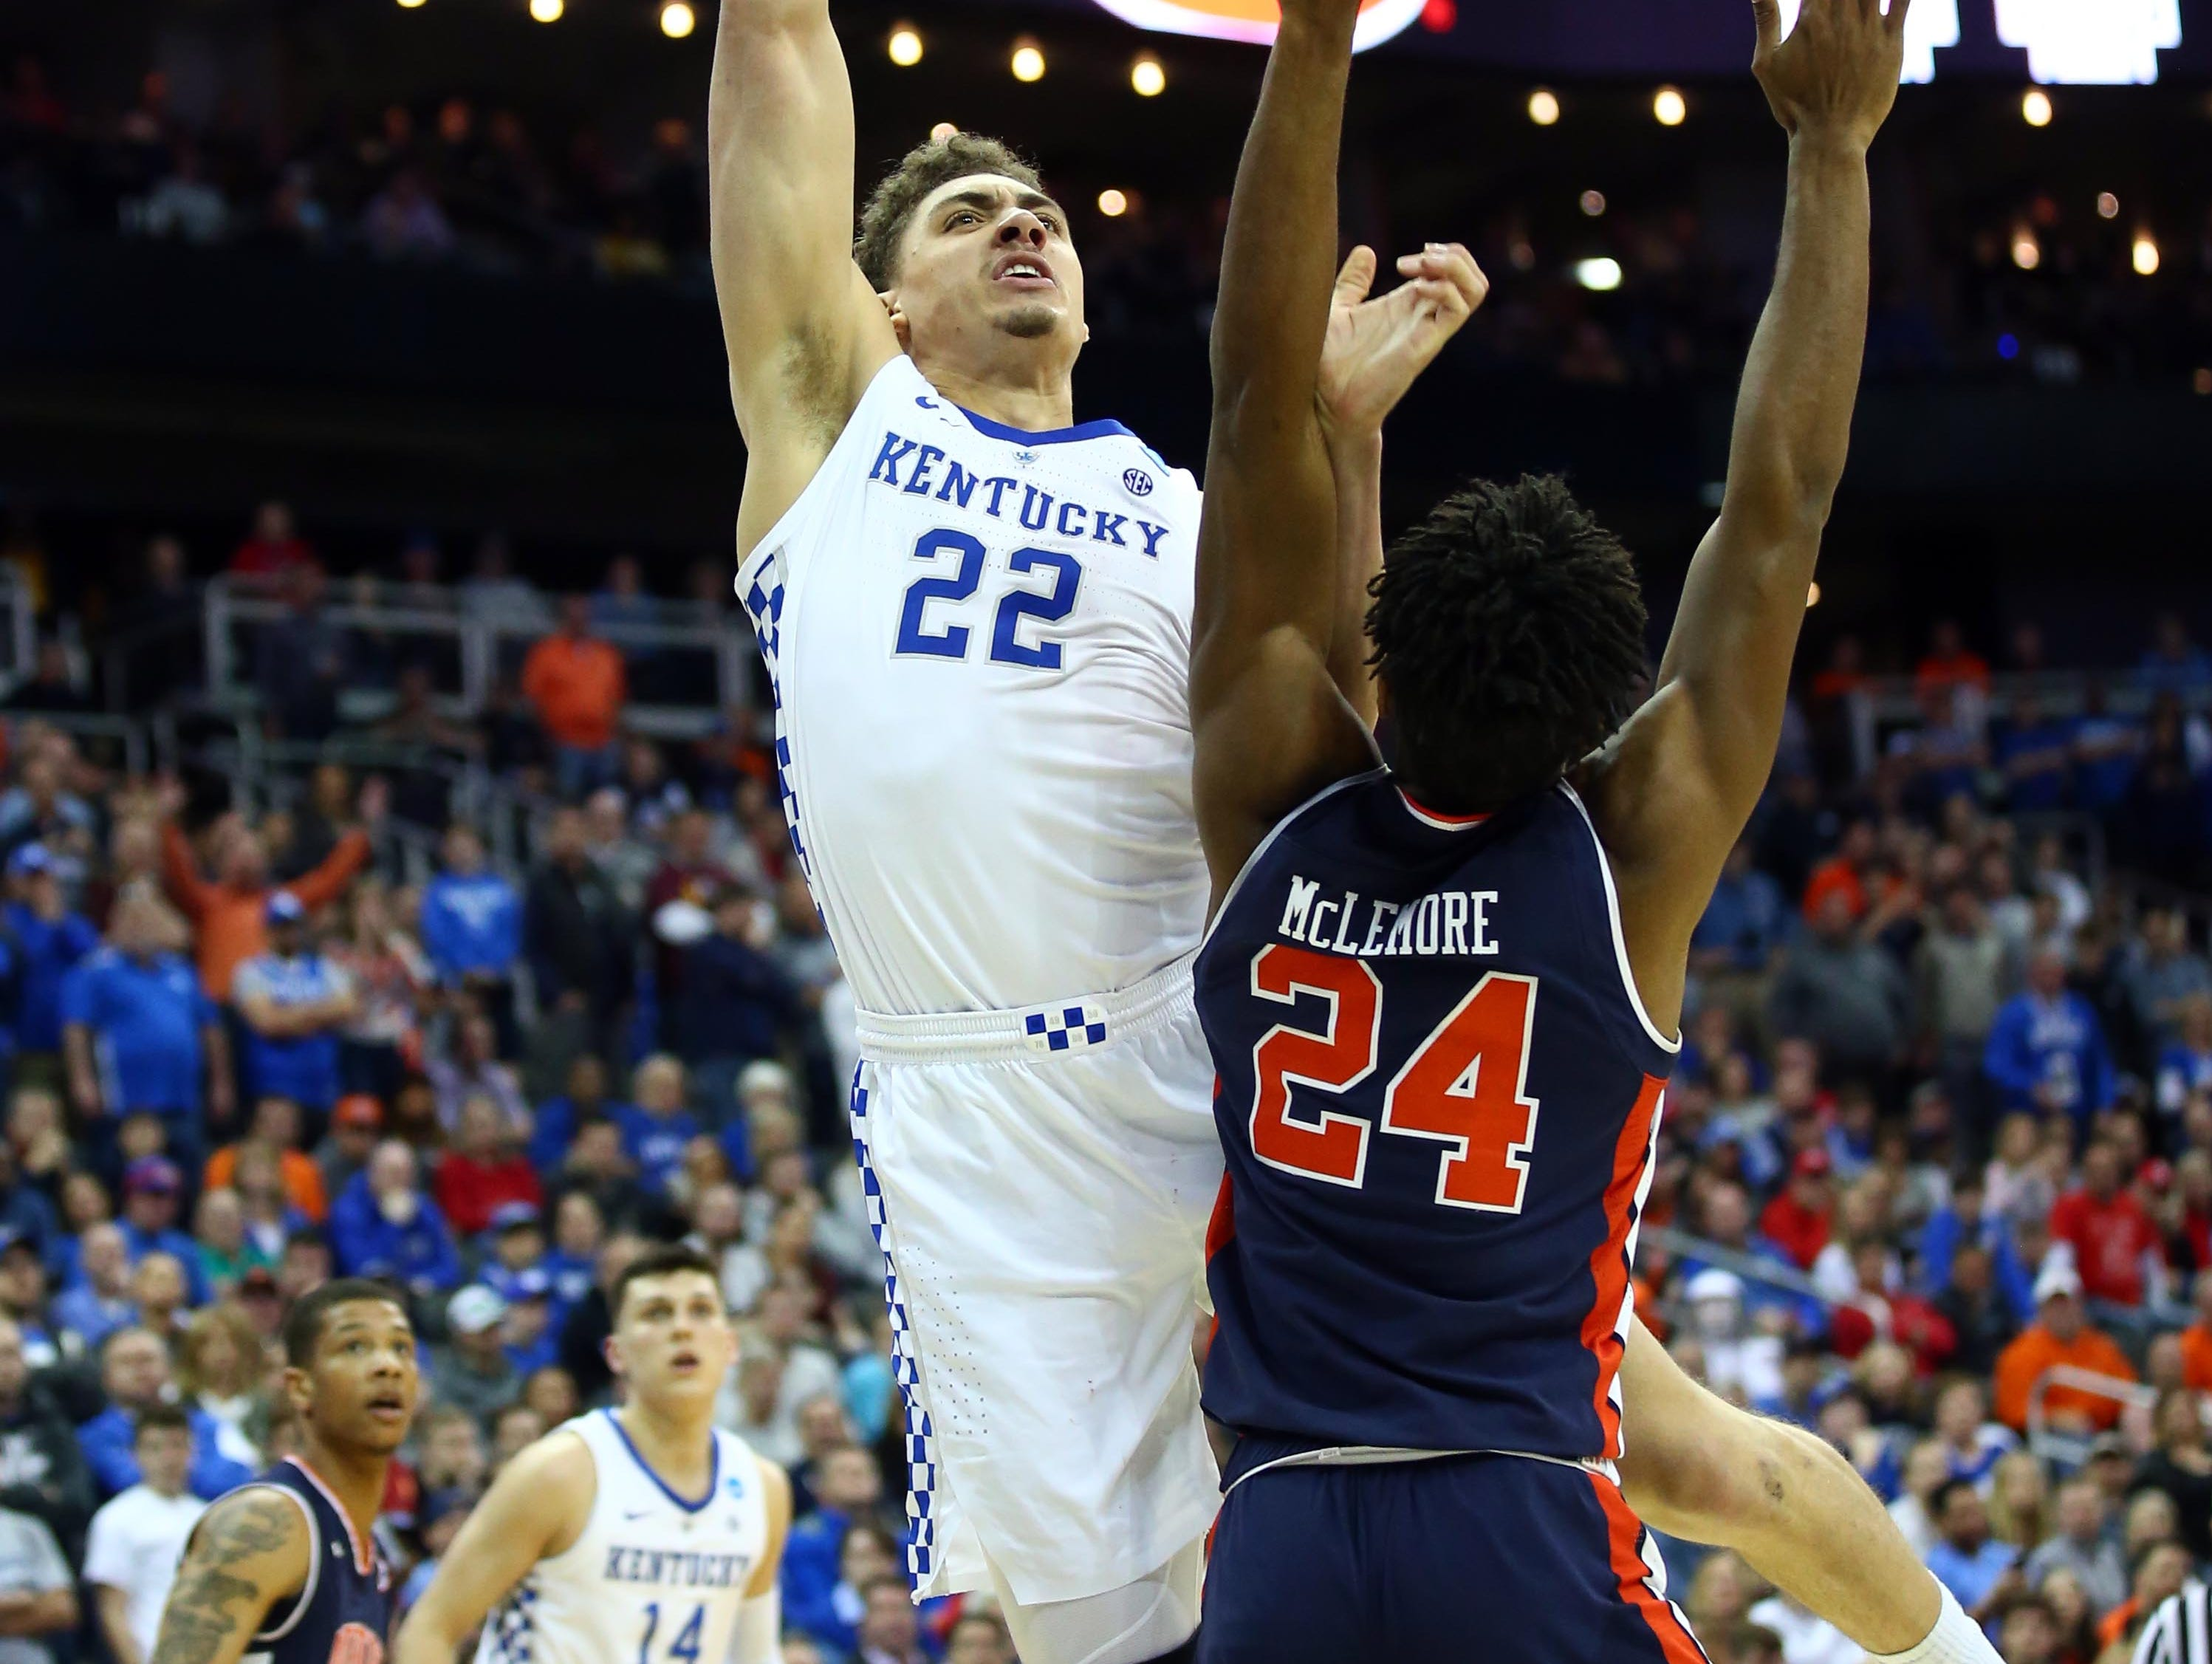 Mar 31, 2019; Kansas City, MO, United States; Kentucky Wildcats forward Reid Travis (22) shoots over Auburn Tigers forward Anfernee McLemore (24) during the second half in the championship game of the midwest regional of the 2019 NCAA Tournament at Sprint Center. Mandatory Credit: Jay Biggerstaff-USA TODAY Sports